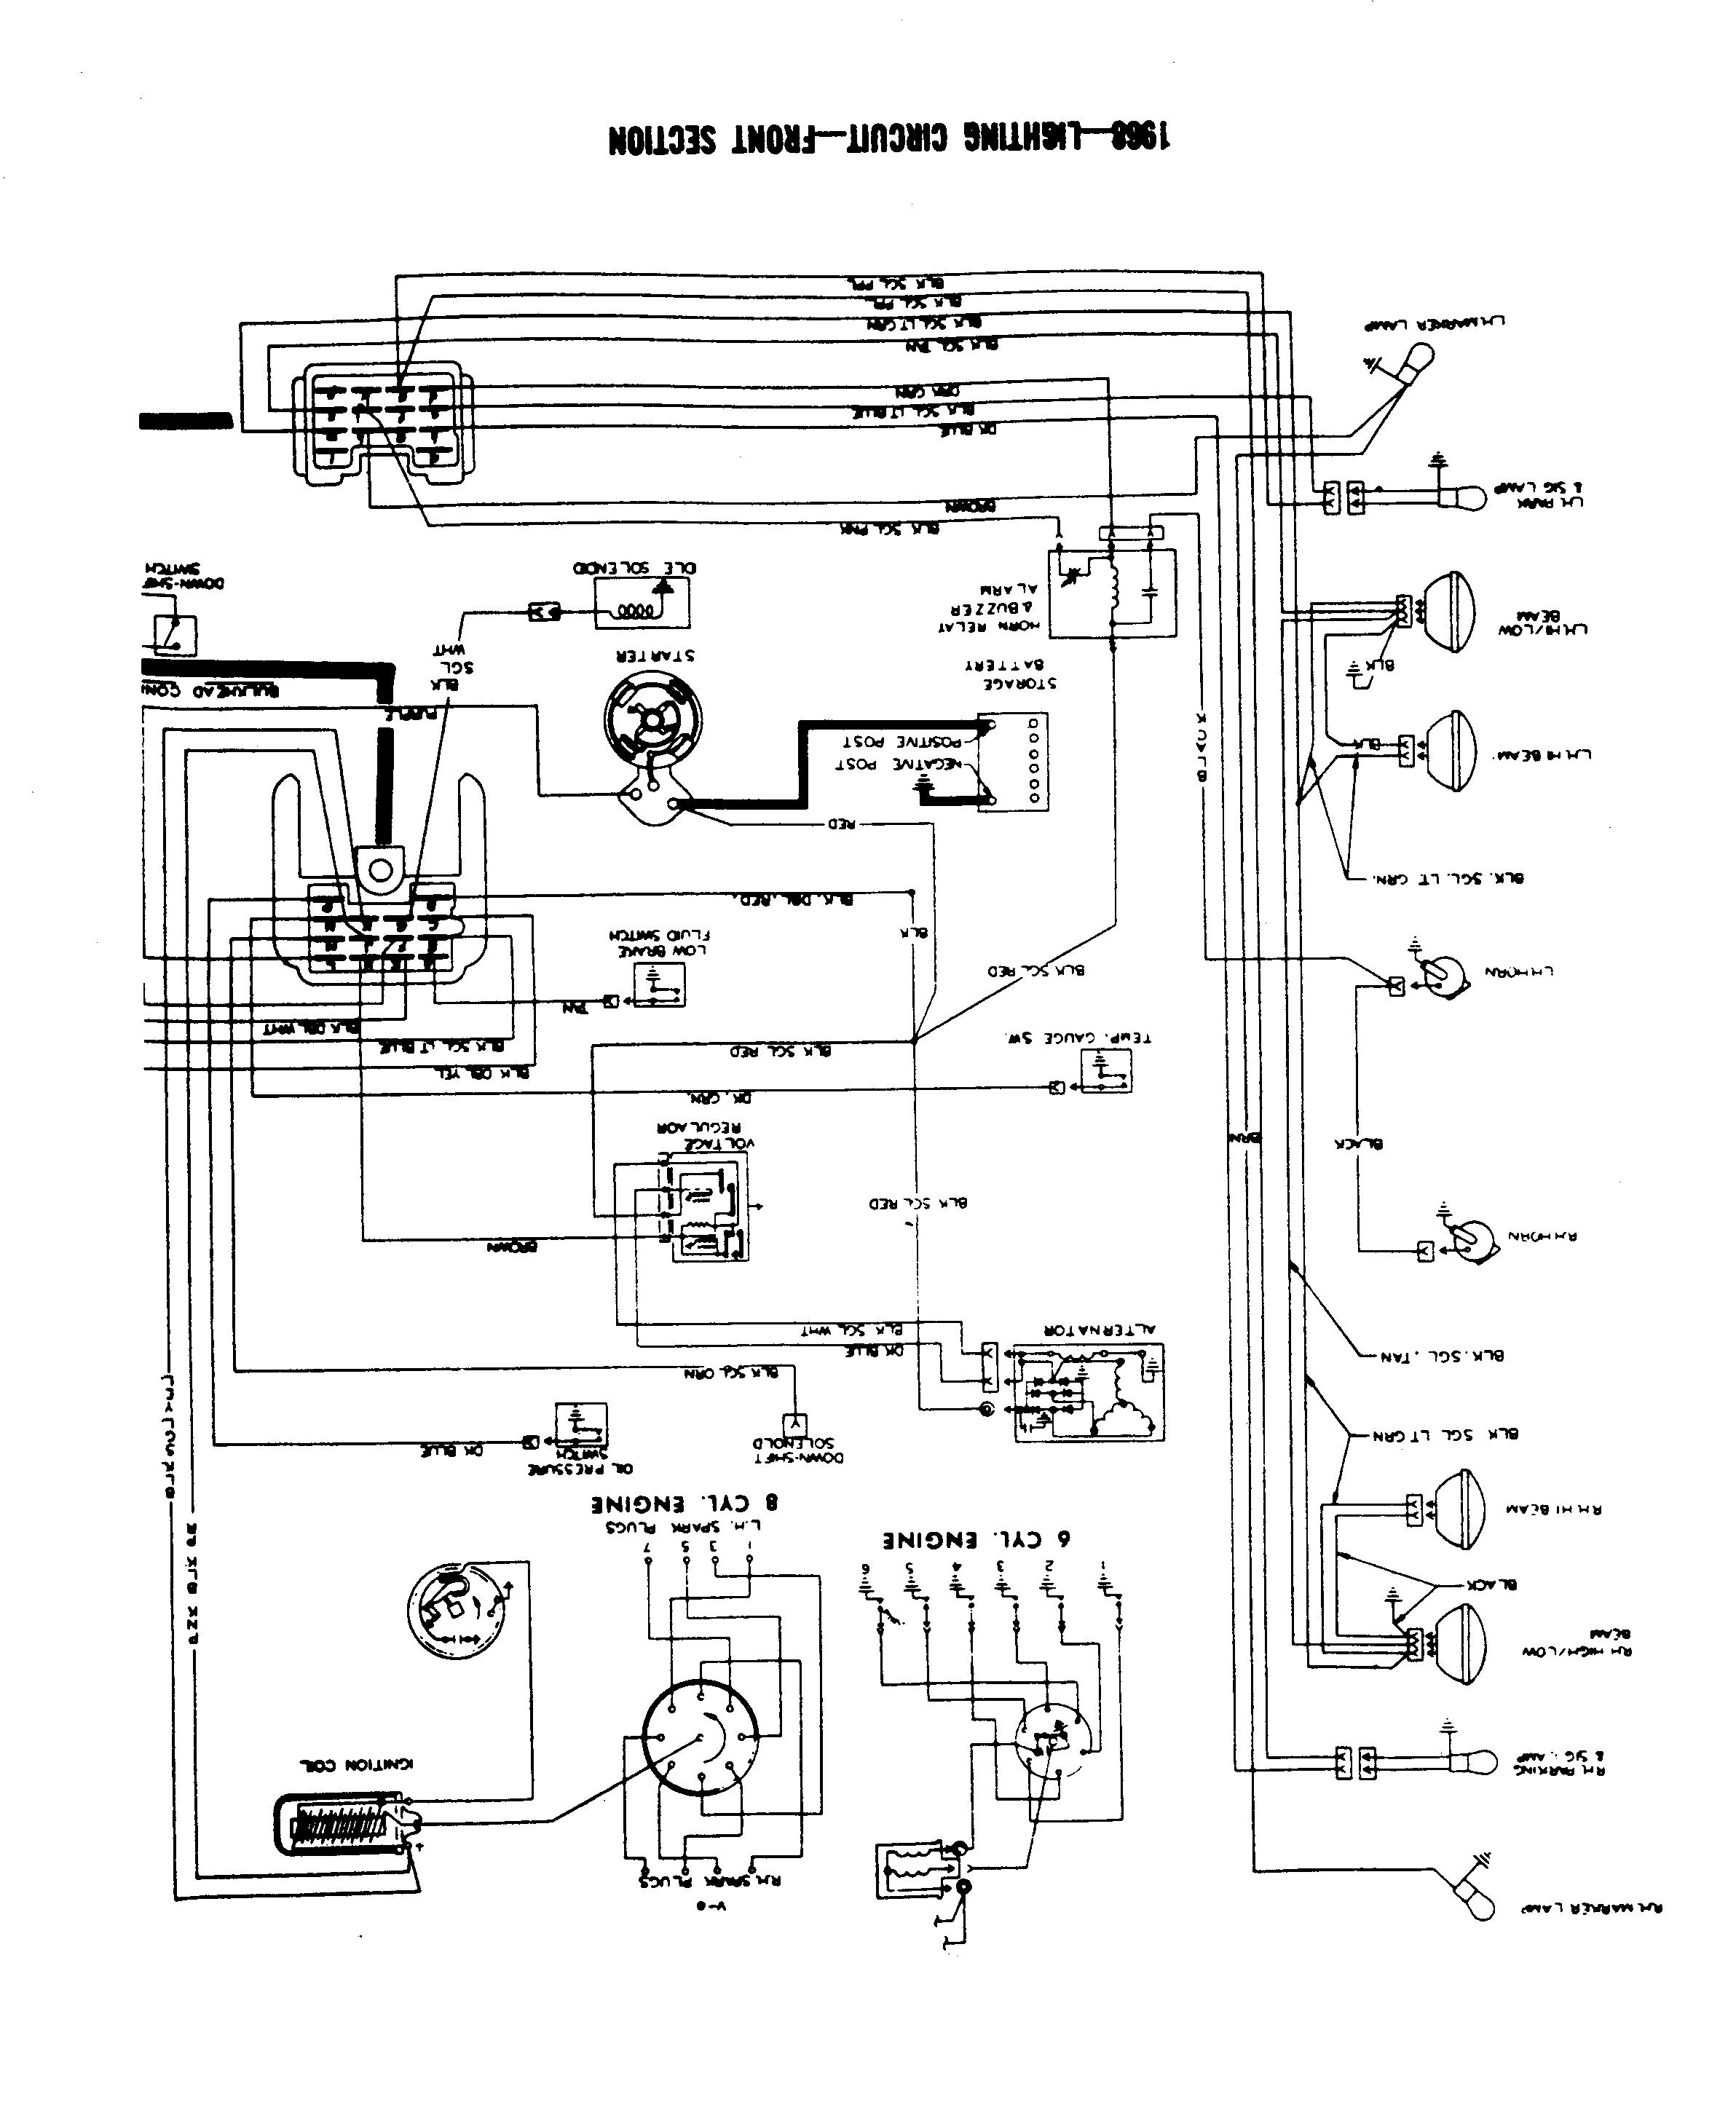 68 gto wiring diagram